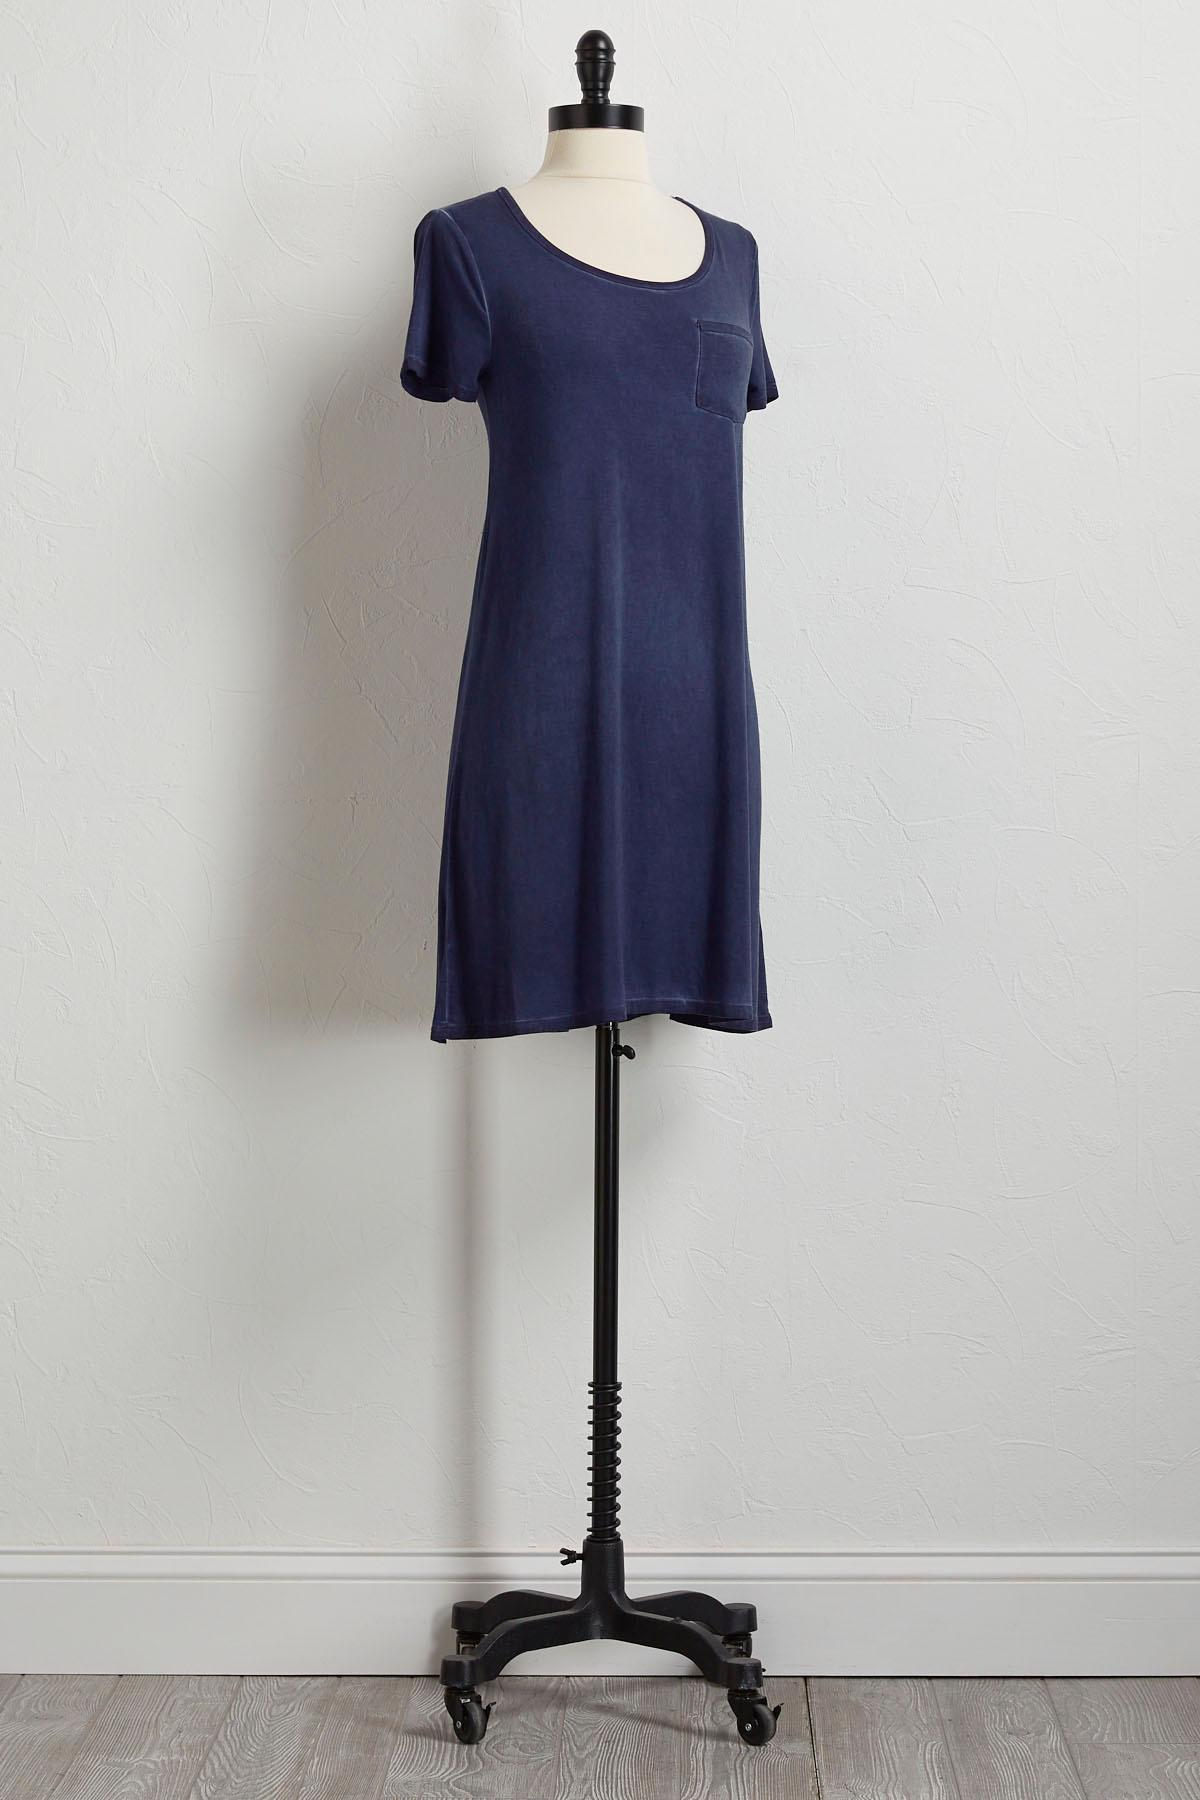 Navy Faded Wash T- Shirt Dress